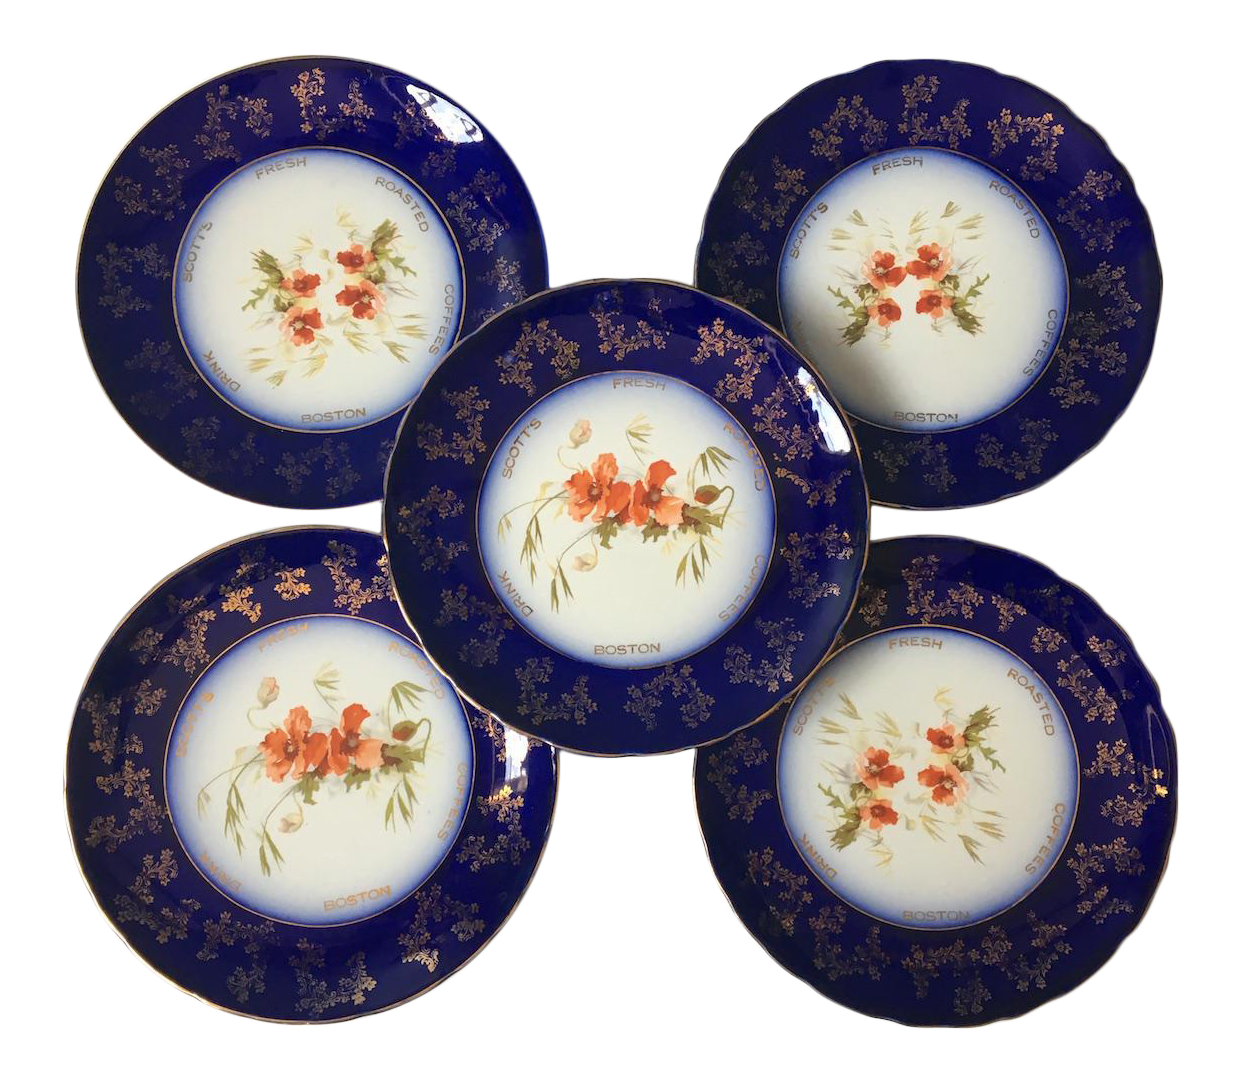 1920s Scottu0027s Fresh Roasted Coffees Plates - Set ...  sc 1 st  Chairish & Vintage u0026 Used Navy Blue Decorative Plates | Chairish